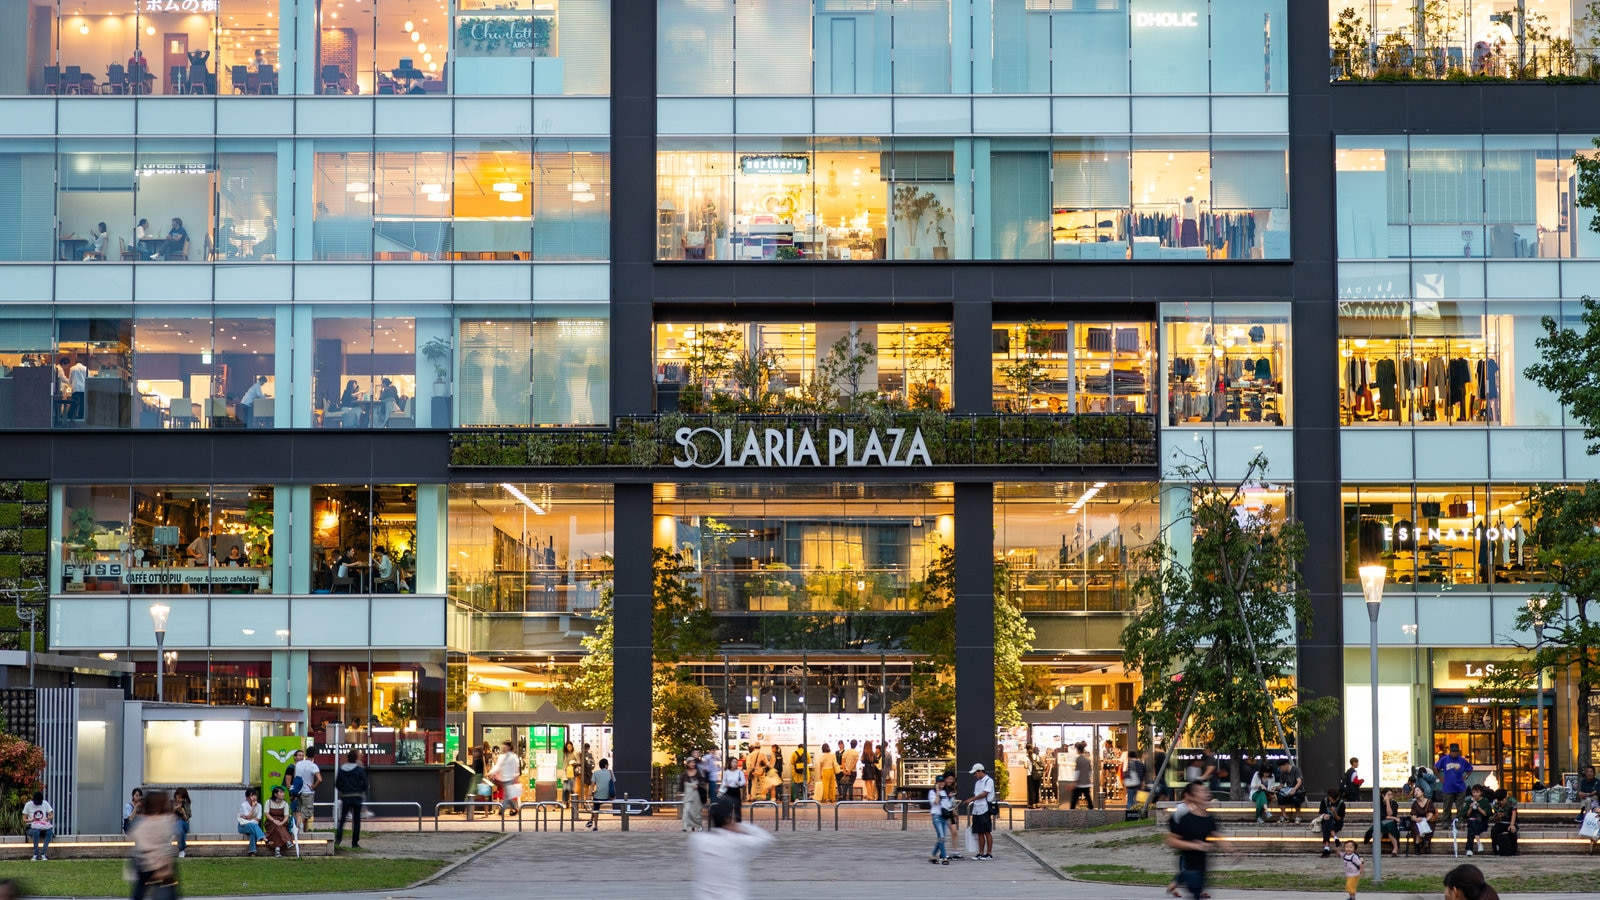 Solaria Plaza showing signage and street scenes